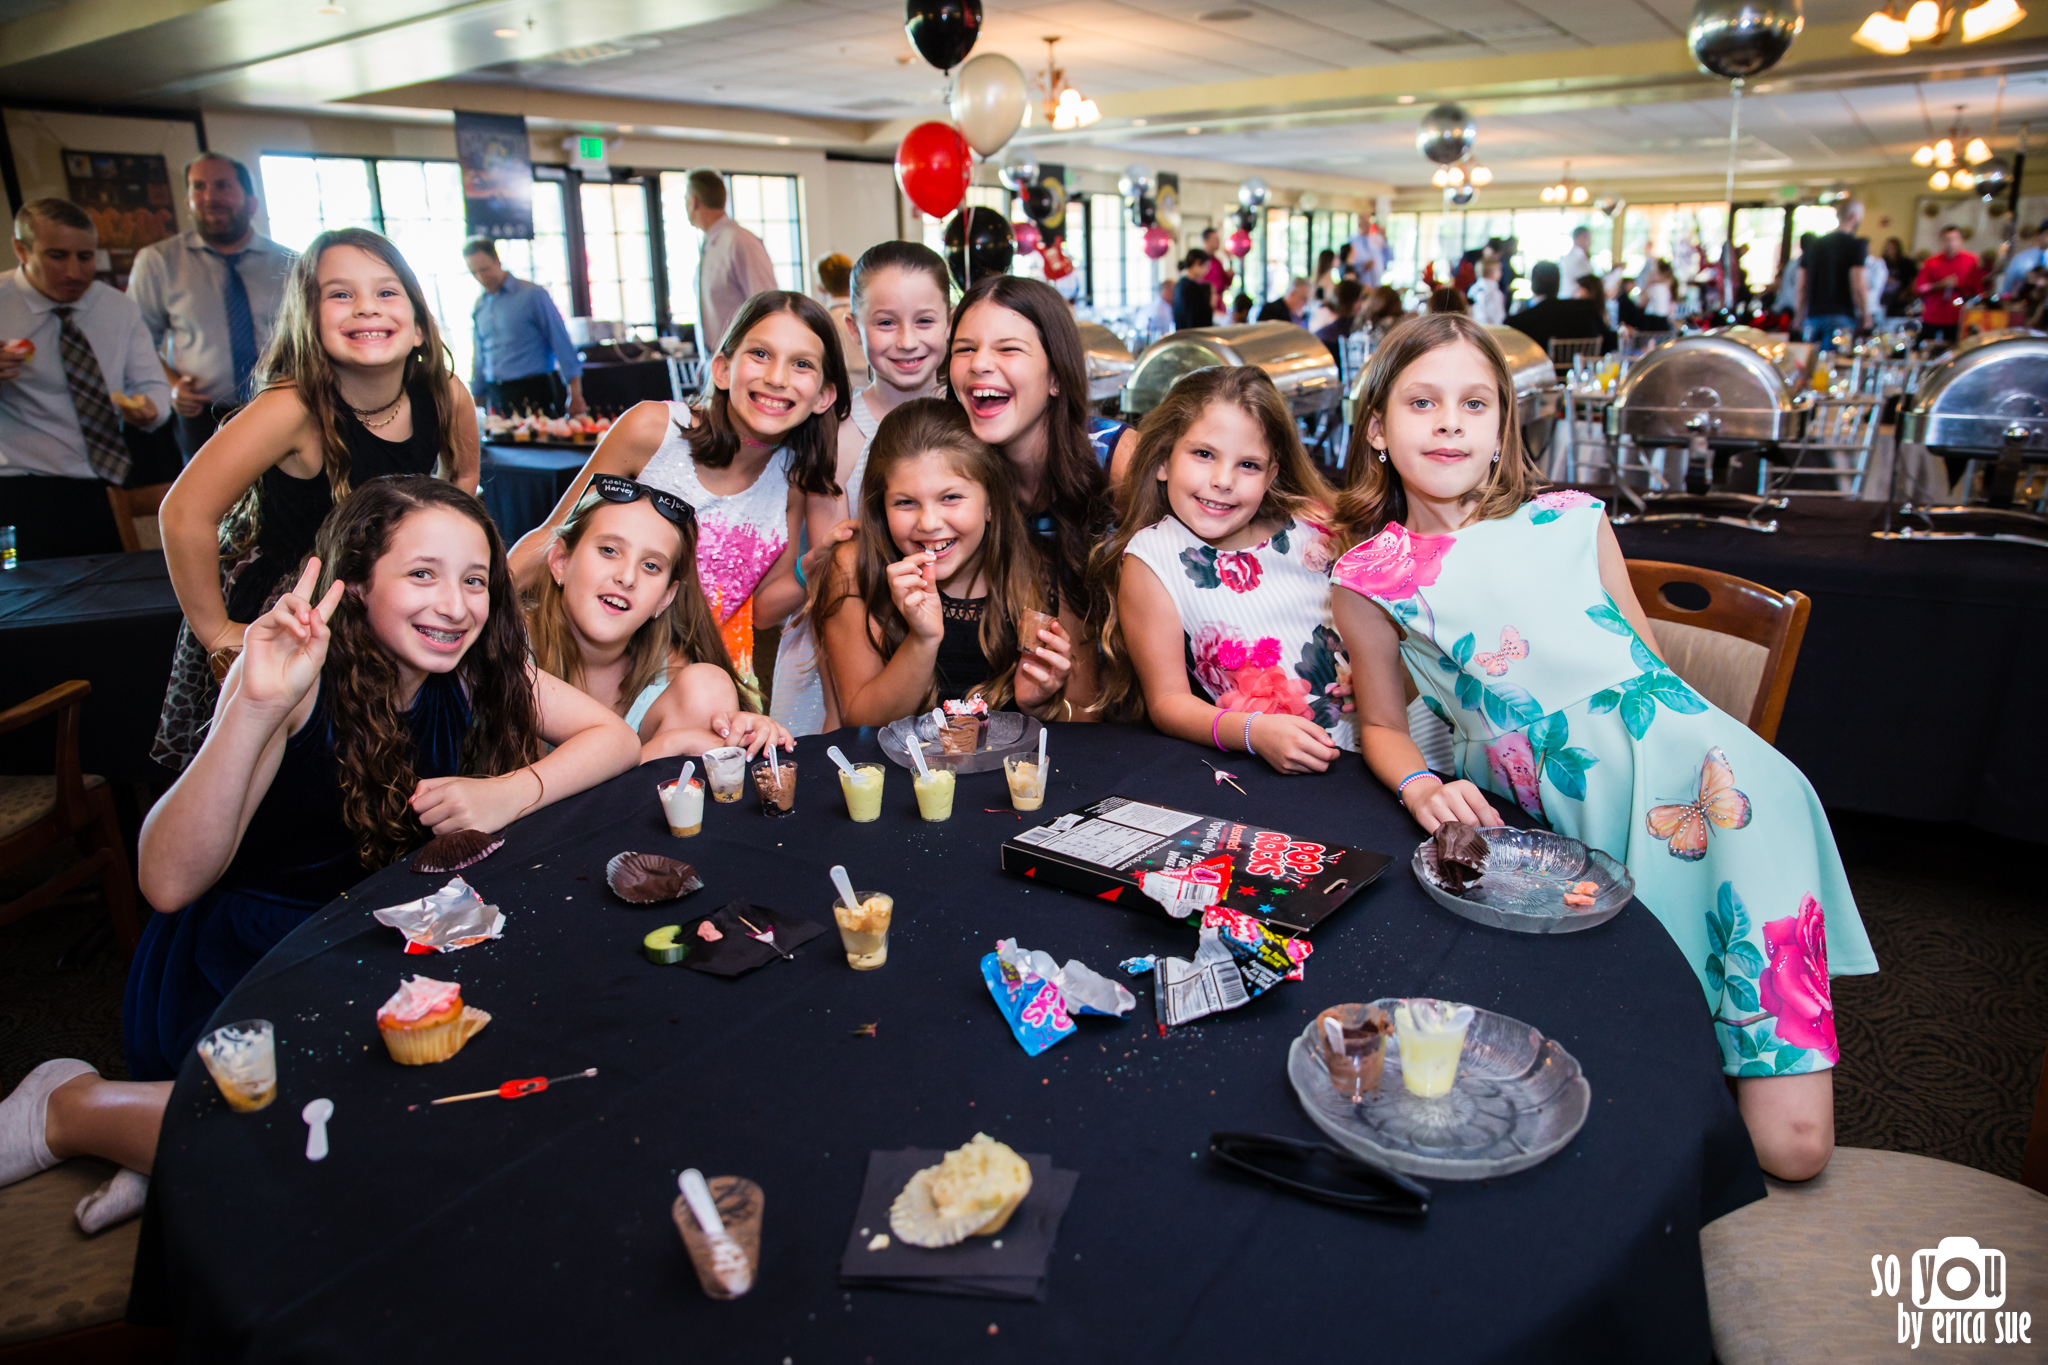 bar-mitzvah-pembroke-lakes-golf-country-club-mitzvah-photography-so-you-by-erica-sue-39.jpg